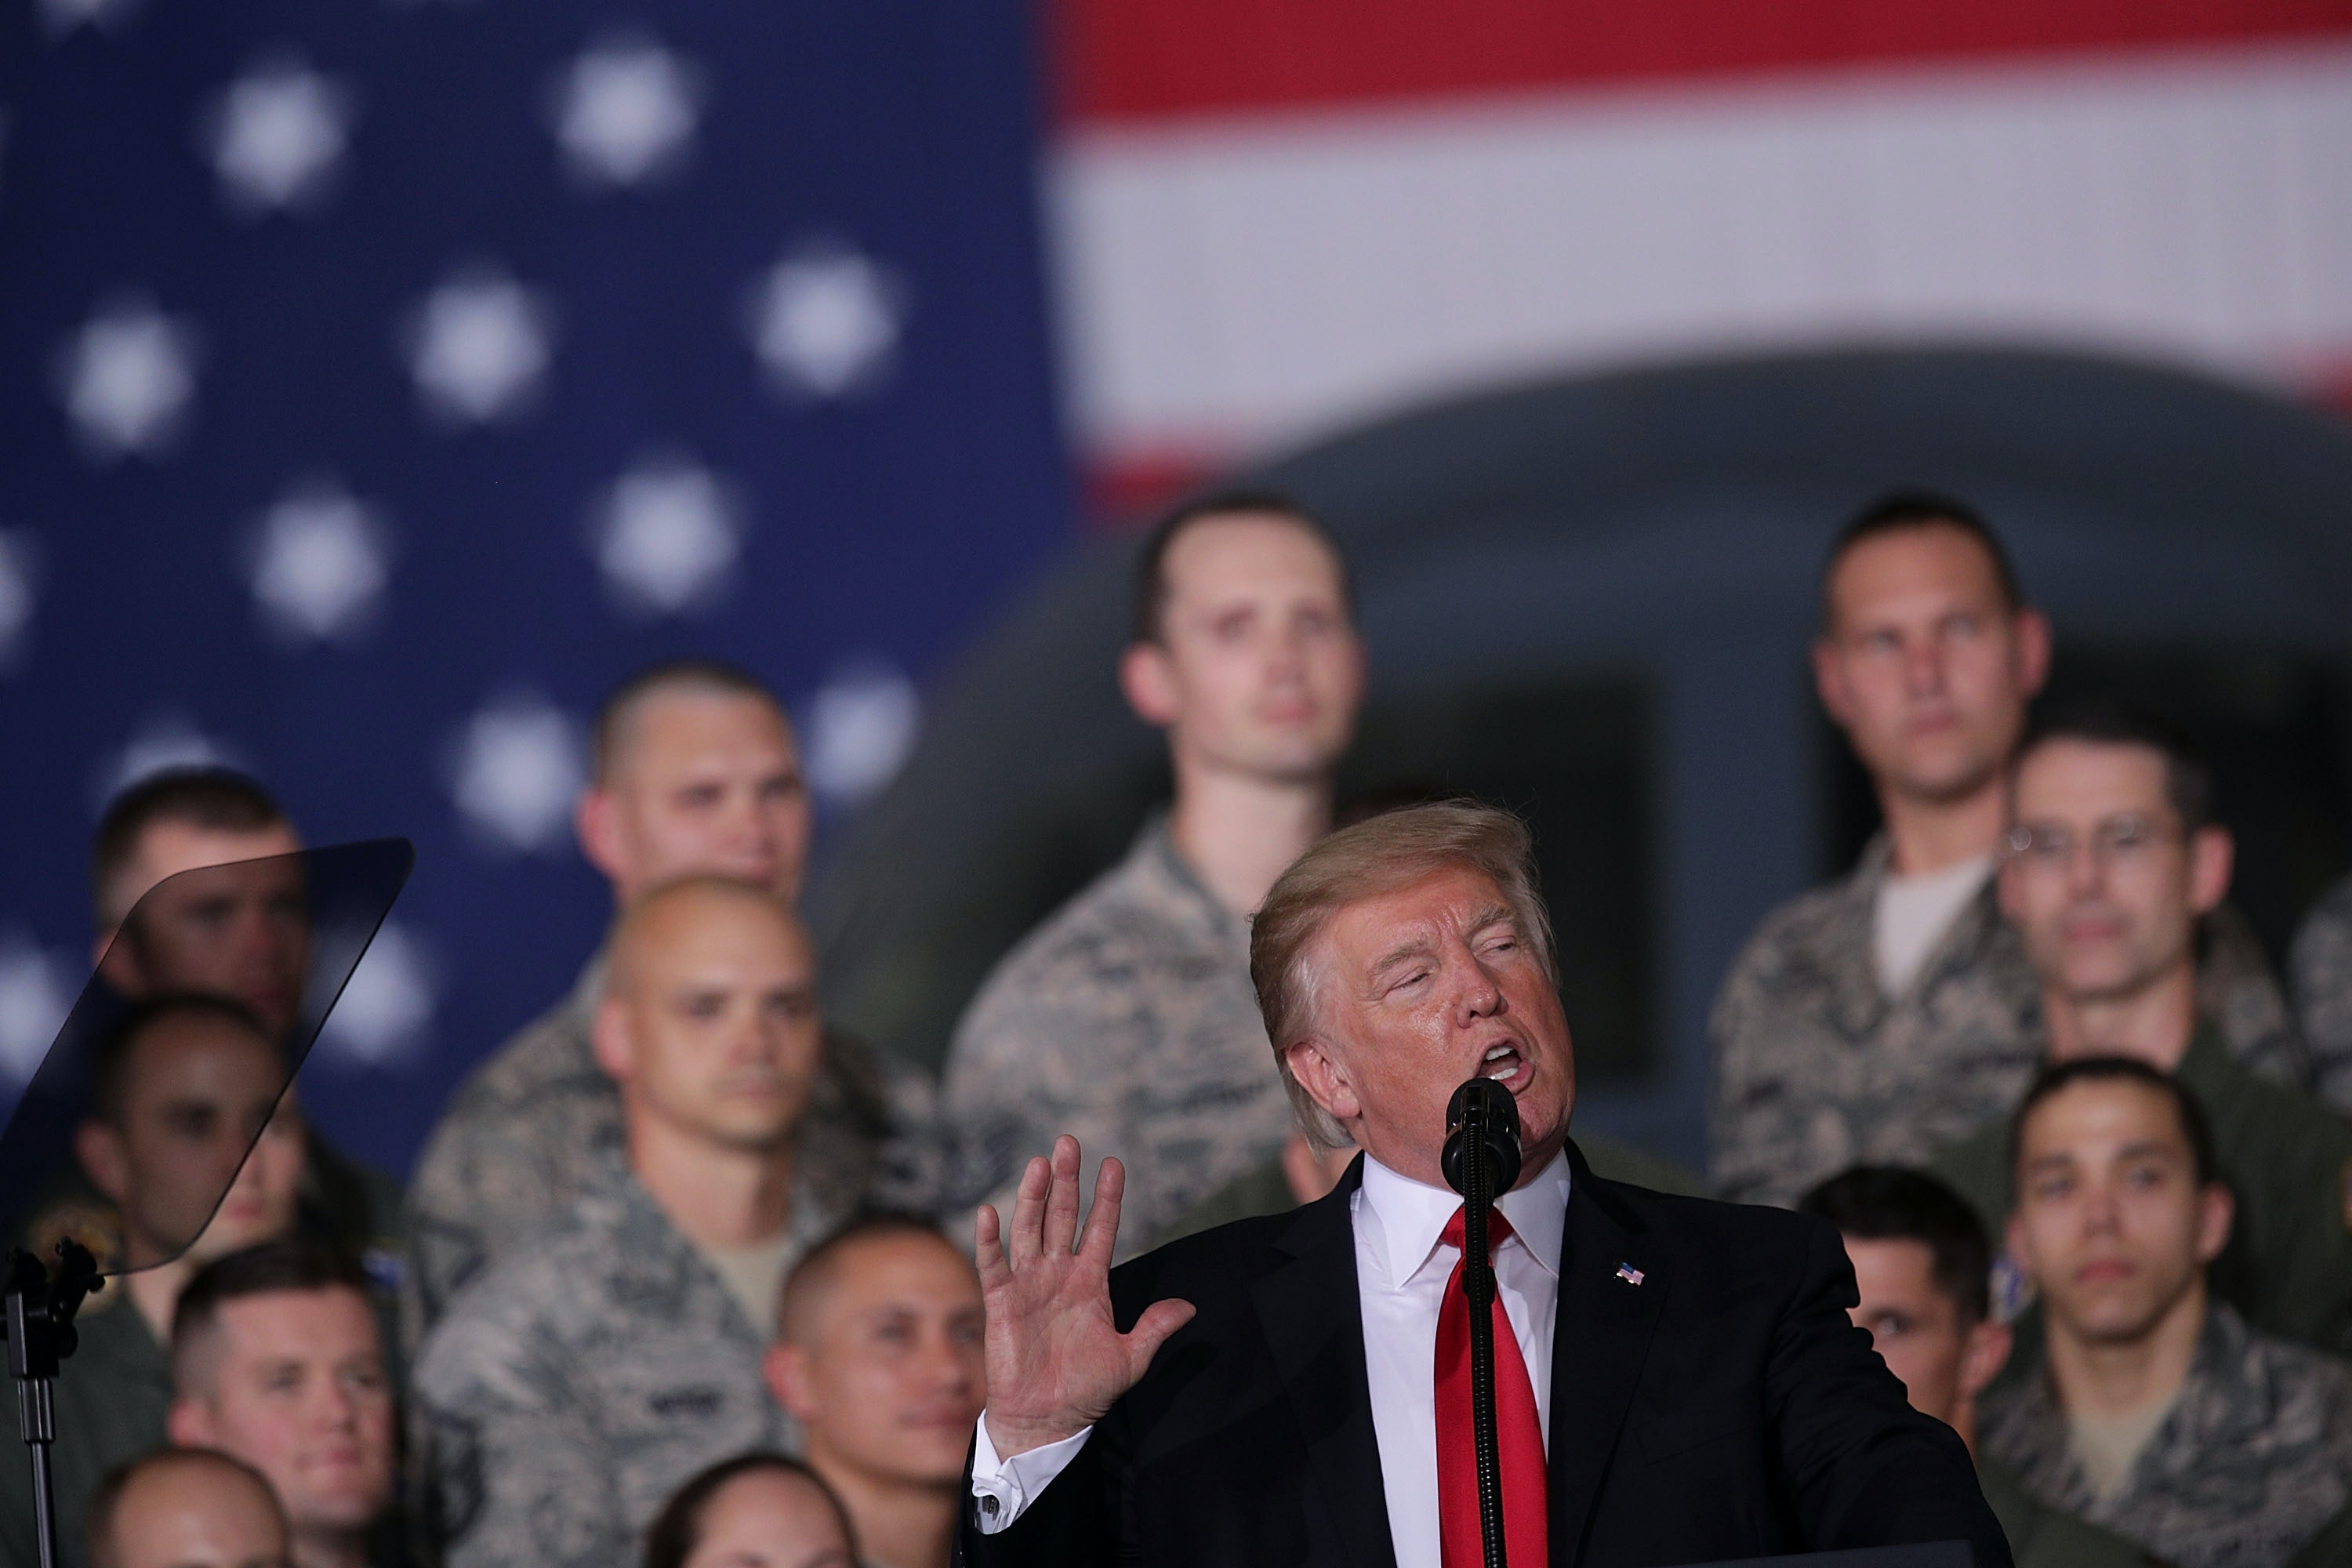 Trump hails U.S. troops in Thanksgiving message